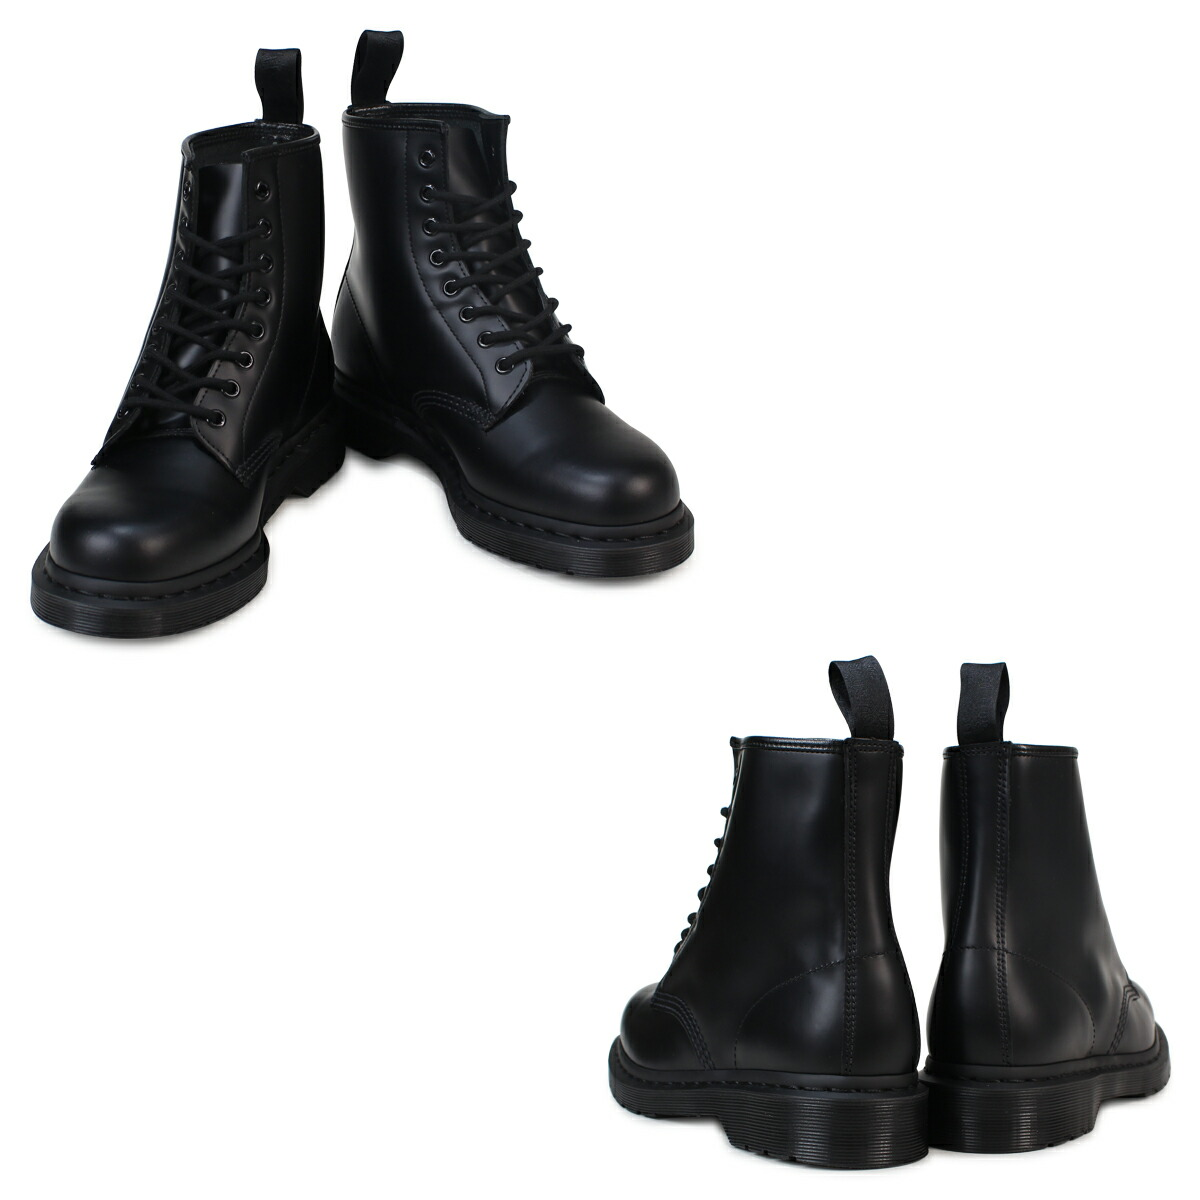 market point 2 x dr martens dr martens 1460 mono 8 hole boots 1460. Black Bedroom Furniture Sets. Home Design Ideas